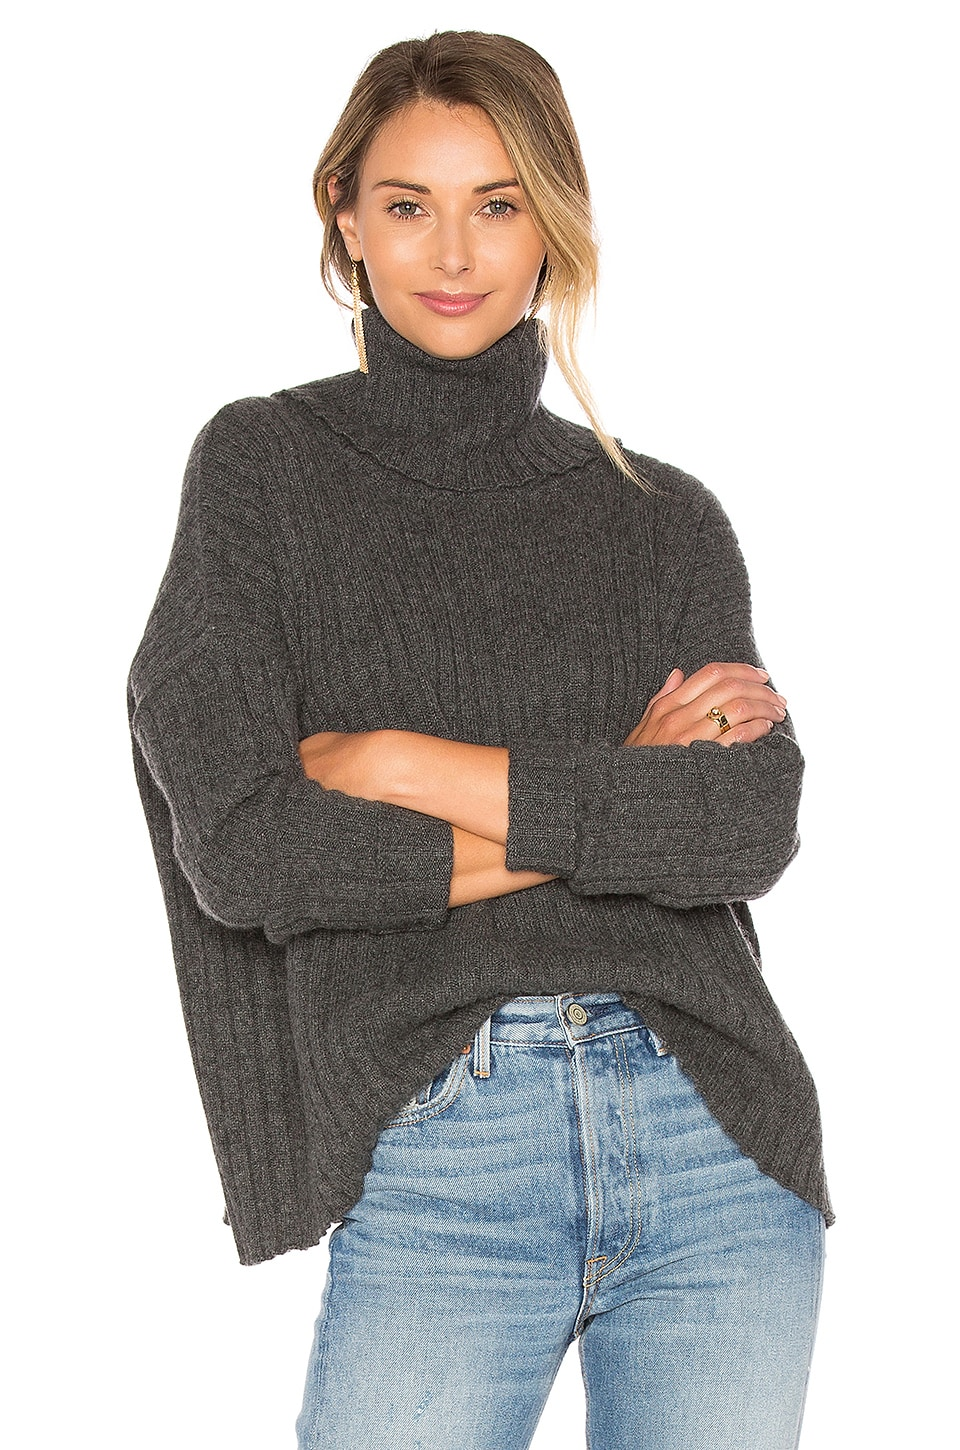 Salzburg Turtleneck Sweater in Grey Central Park West 100% Guaranteed Clearance With Mastercard Fake Cheap Online Shopping Online Cheap Price cDNFDC